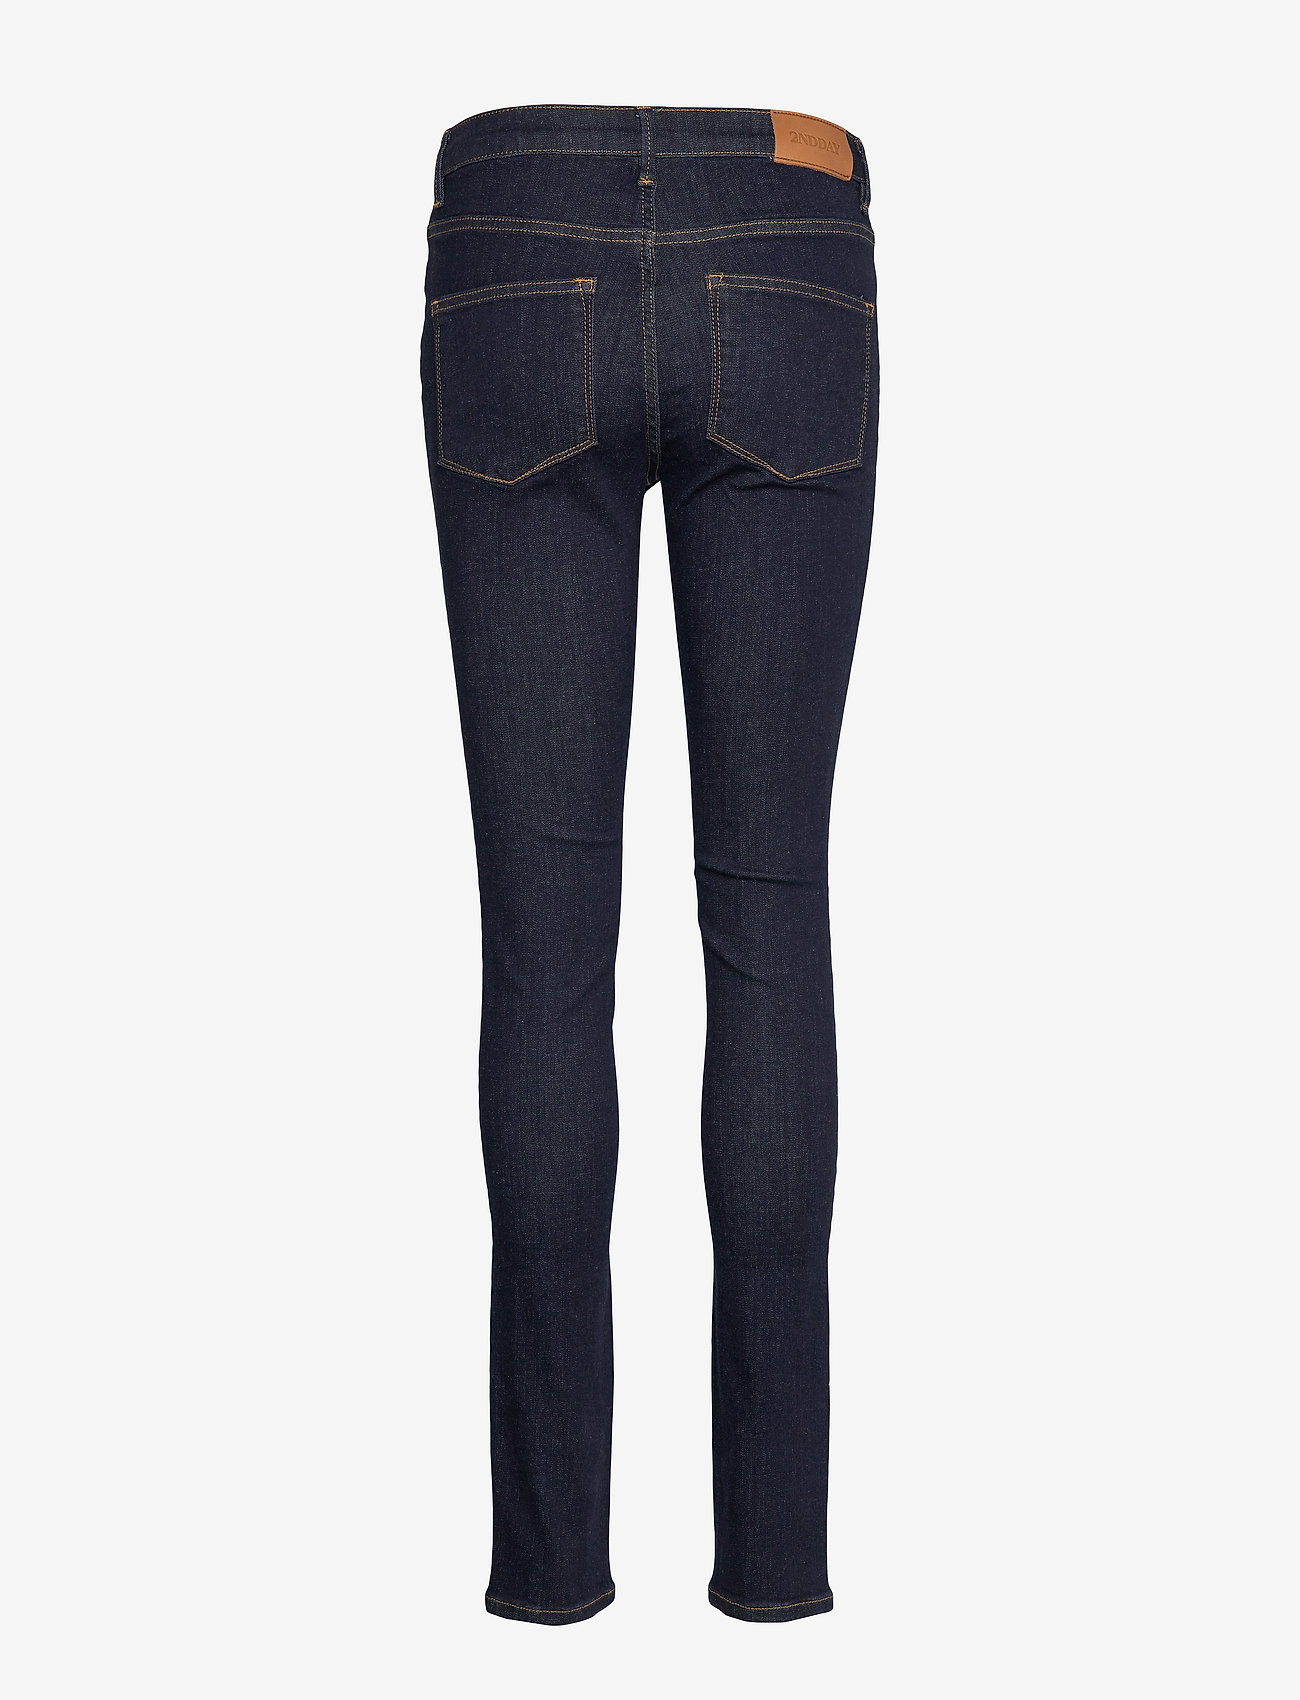 2NDDAY - 2ND Jolie Deep - skinny jeans - dark blue - 1